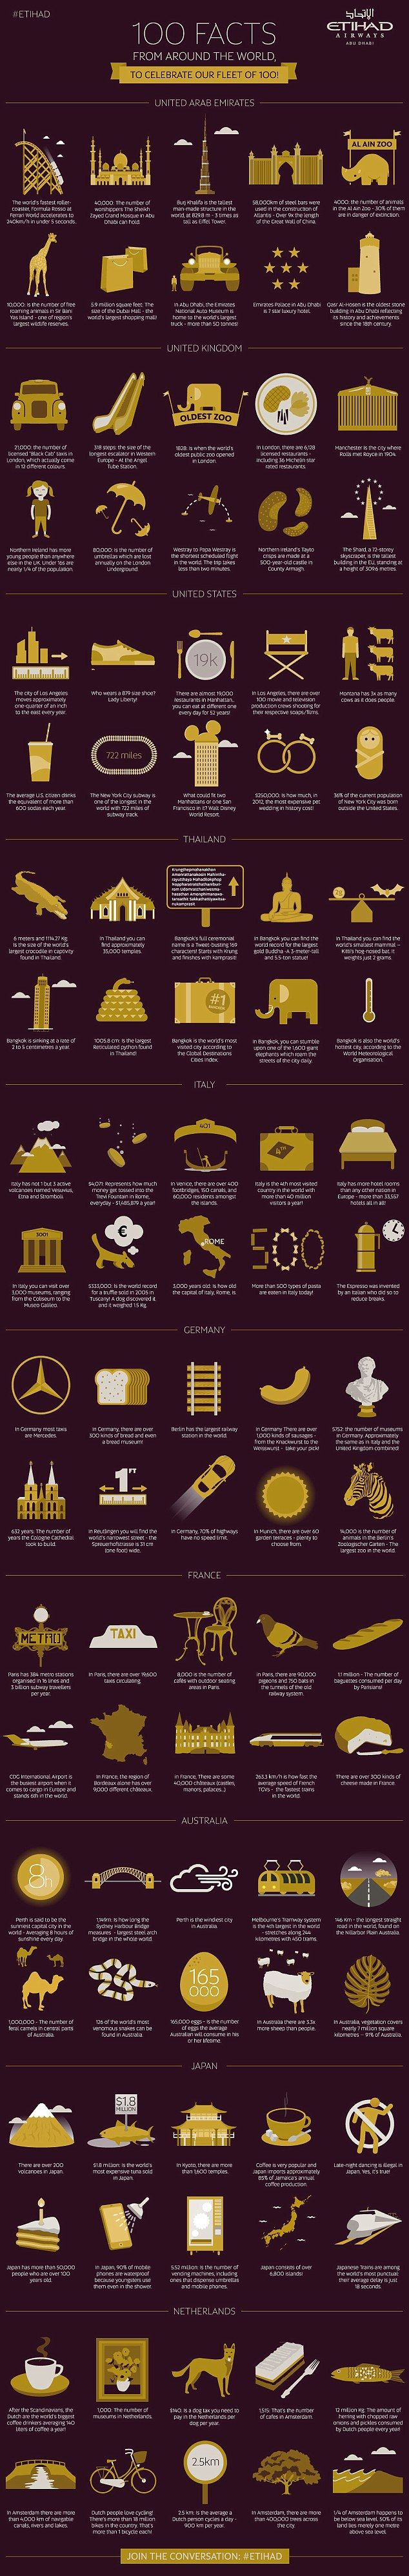 Did you know that there are more than 500 types of pasta eaten in Italy today, that the Dubai Mall is 5.9million square feet and that Montana has three times as many cows as it has people? These are just a few of the diverse facts and figures revealed in a new Infographic called '100 Facts from Around the World' by Abu Dhabi's Etihad.